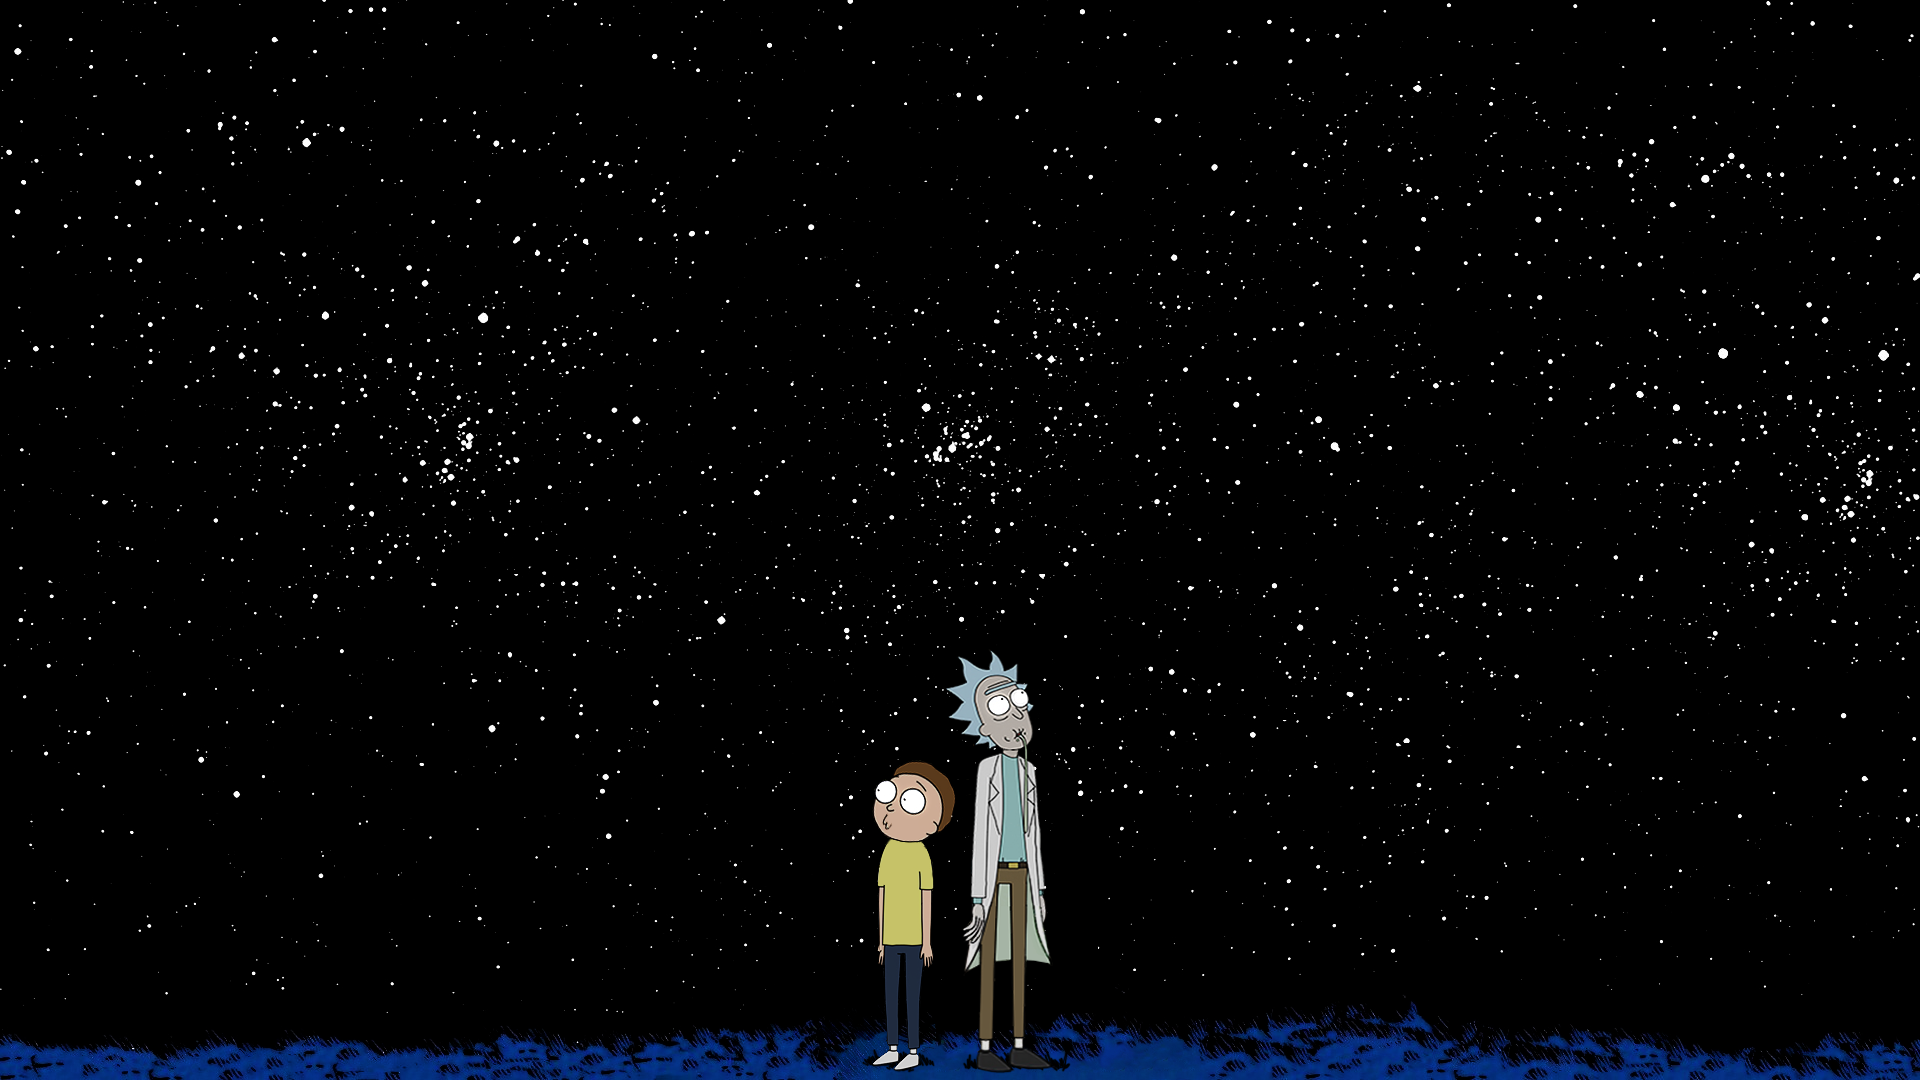 Rick and Morty in Space [1920 1080] wallpaper 1920x1080